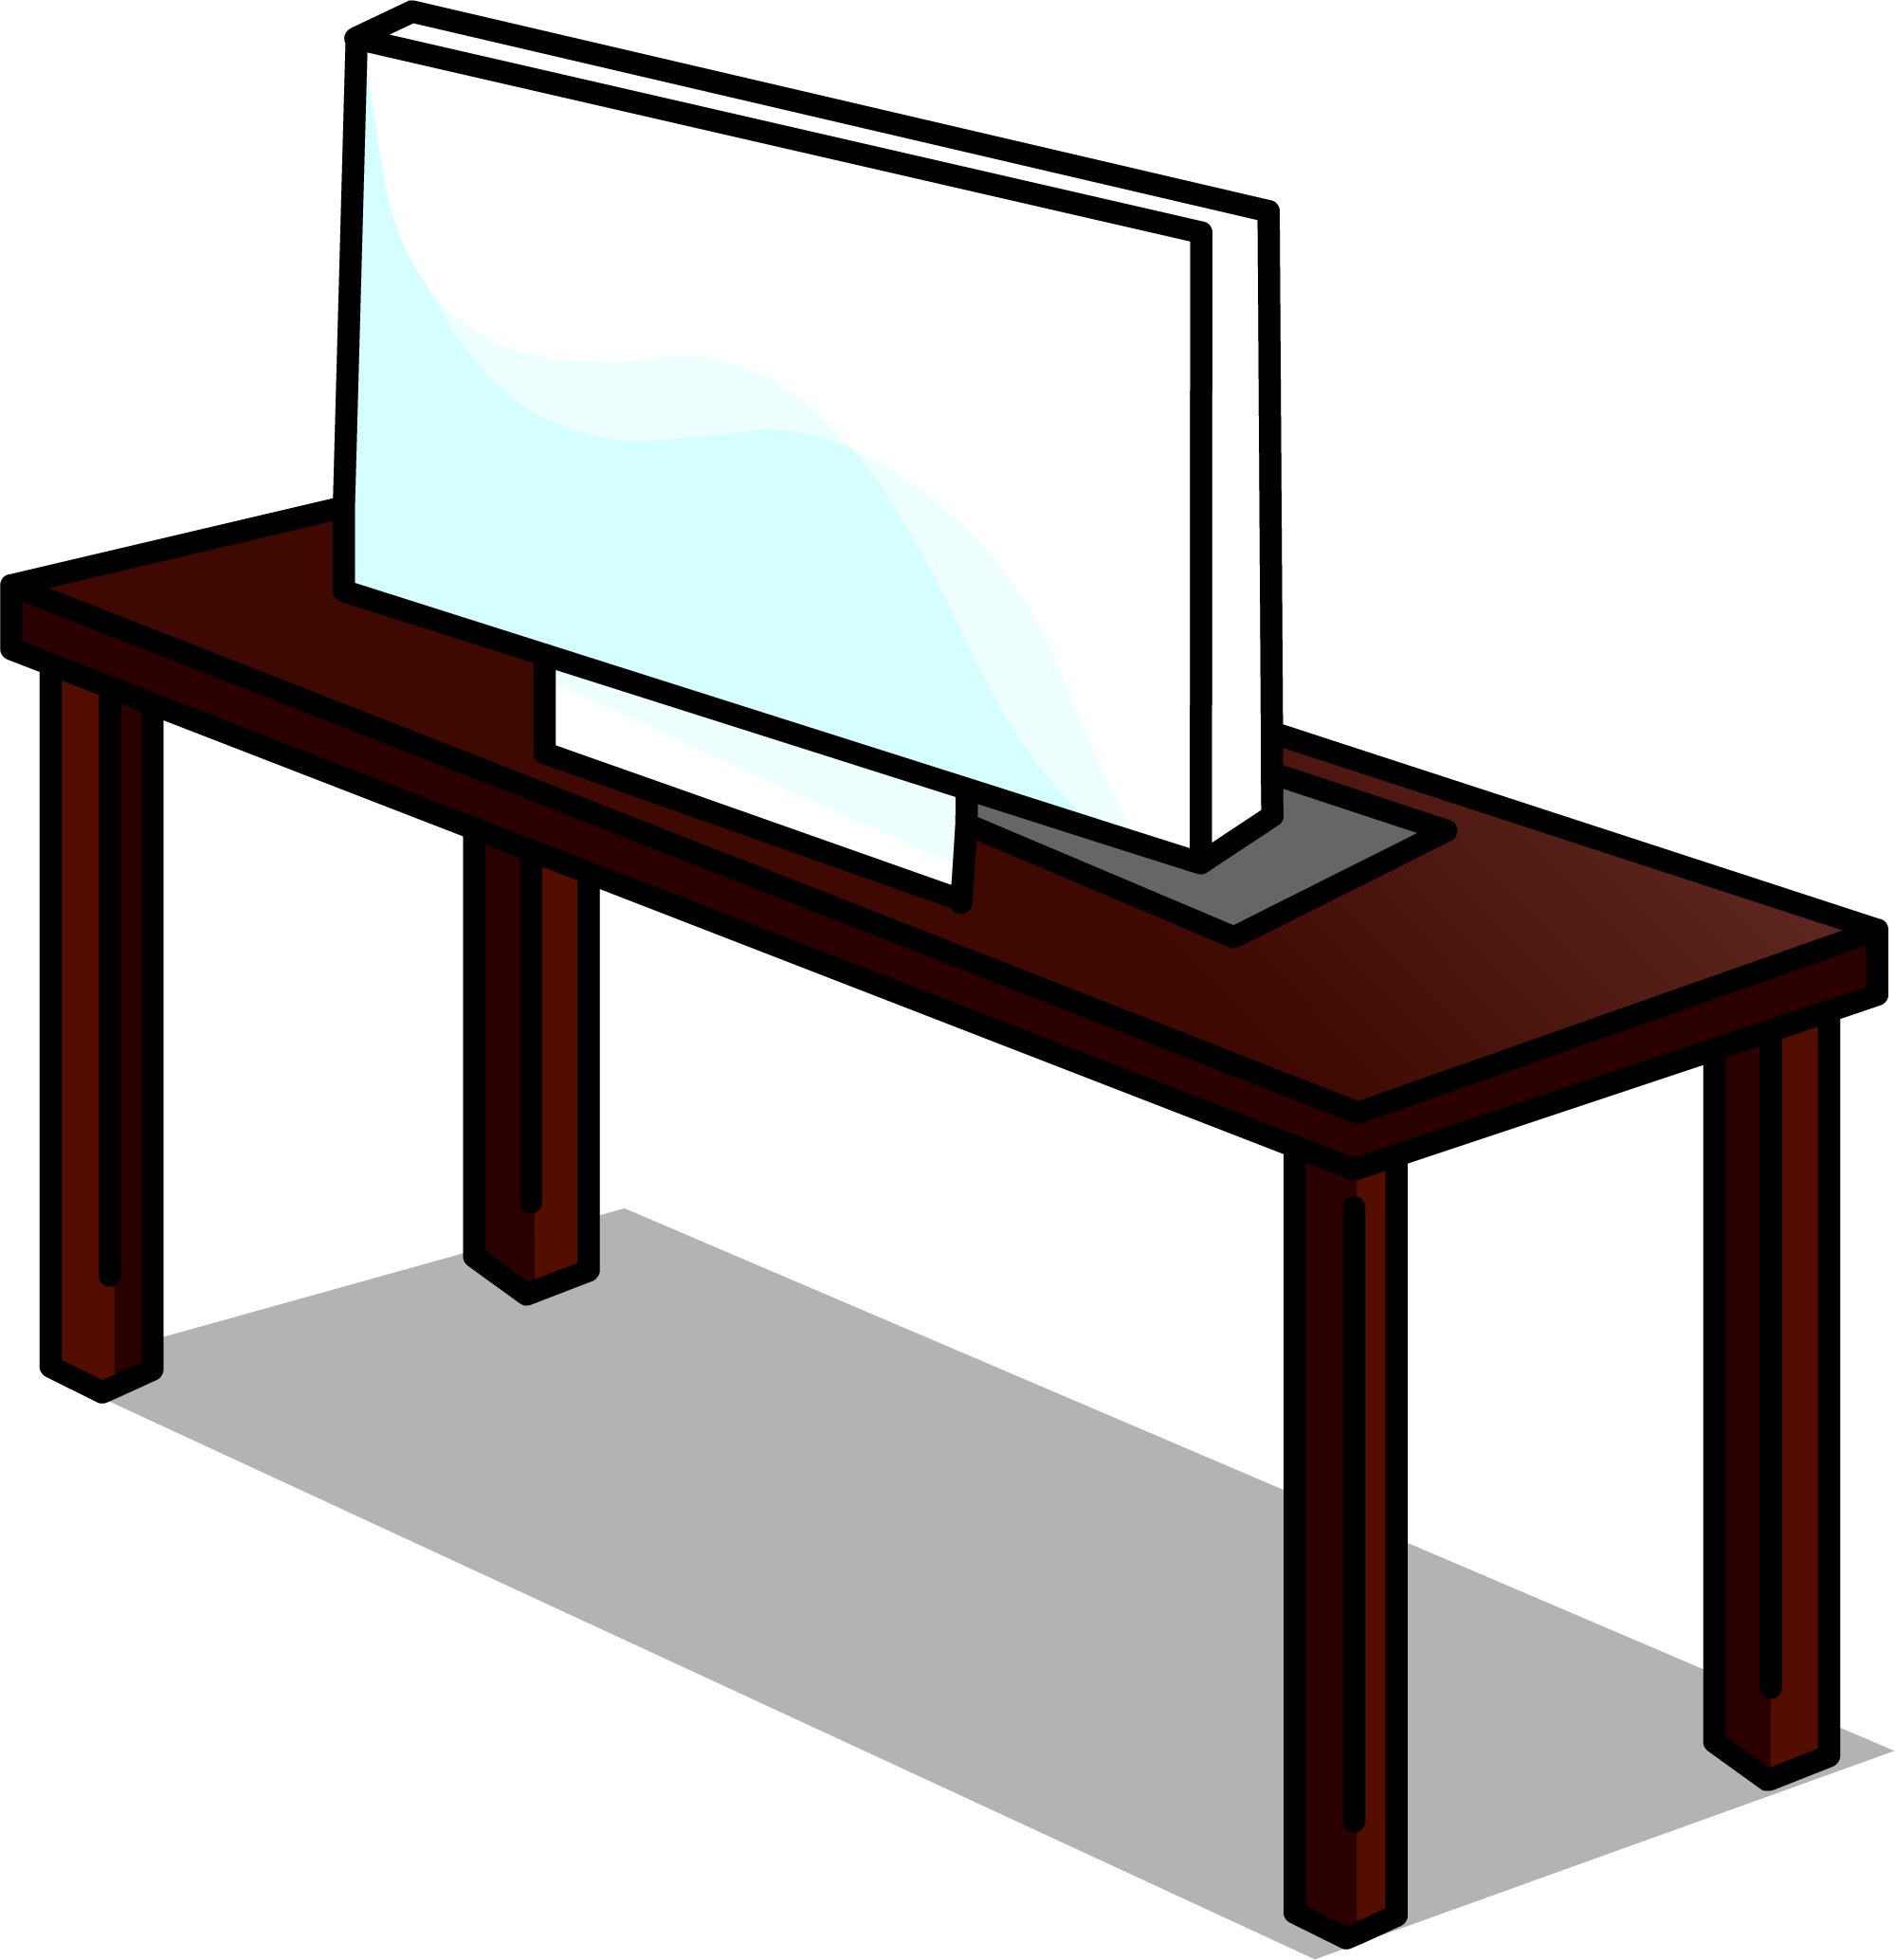 Desk clipart table monitor, Desk table monitor Transparent